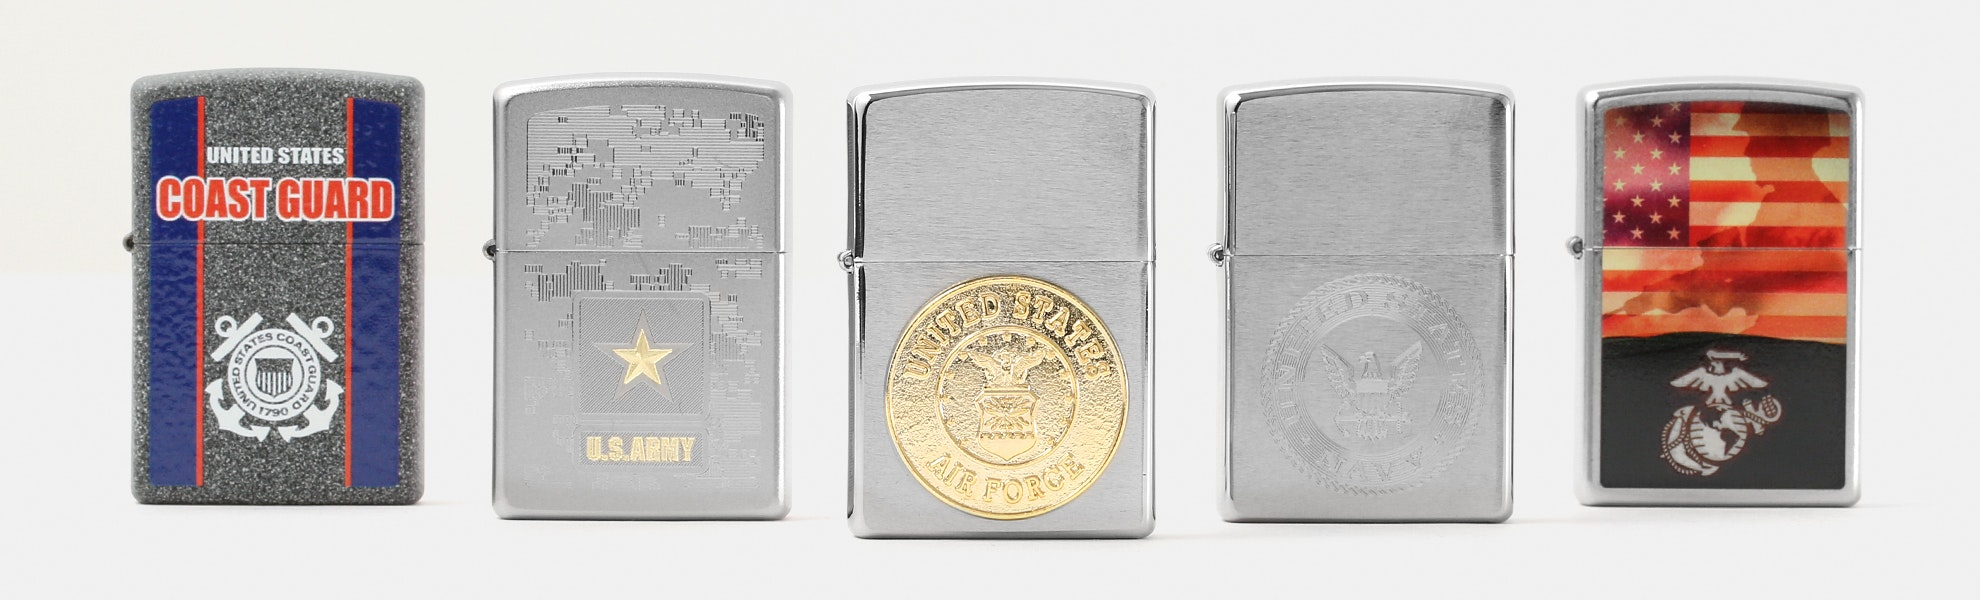 Zippo Lighters: US Armed Forces Collection